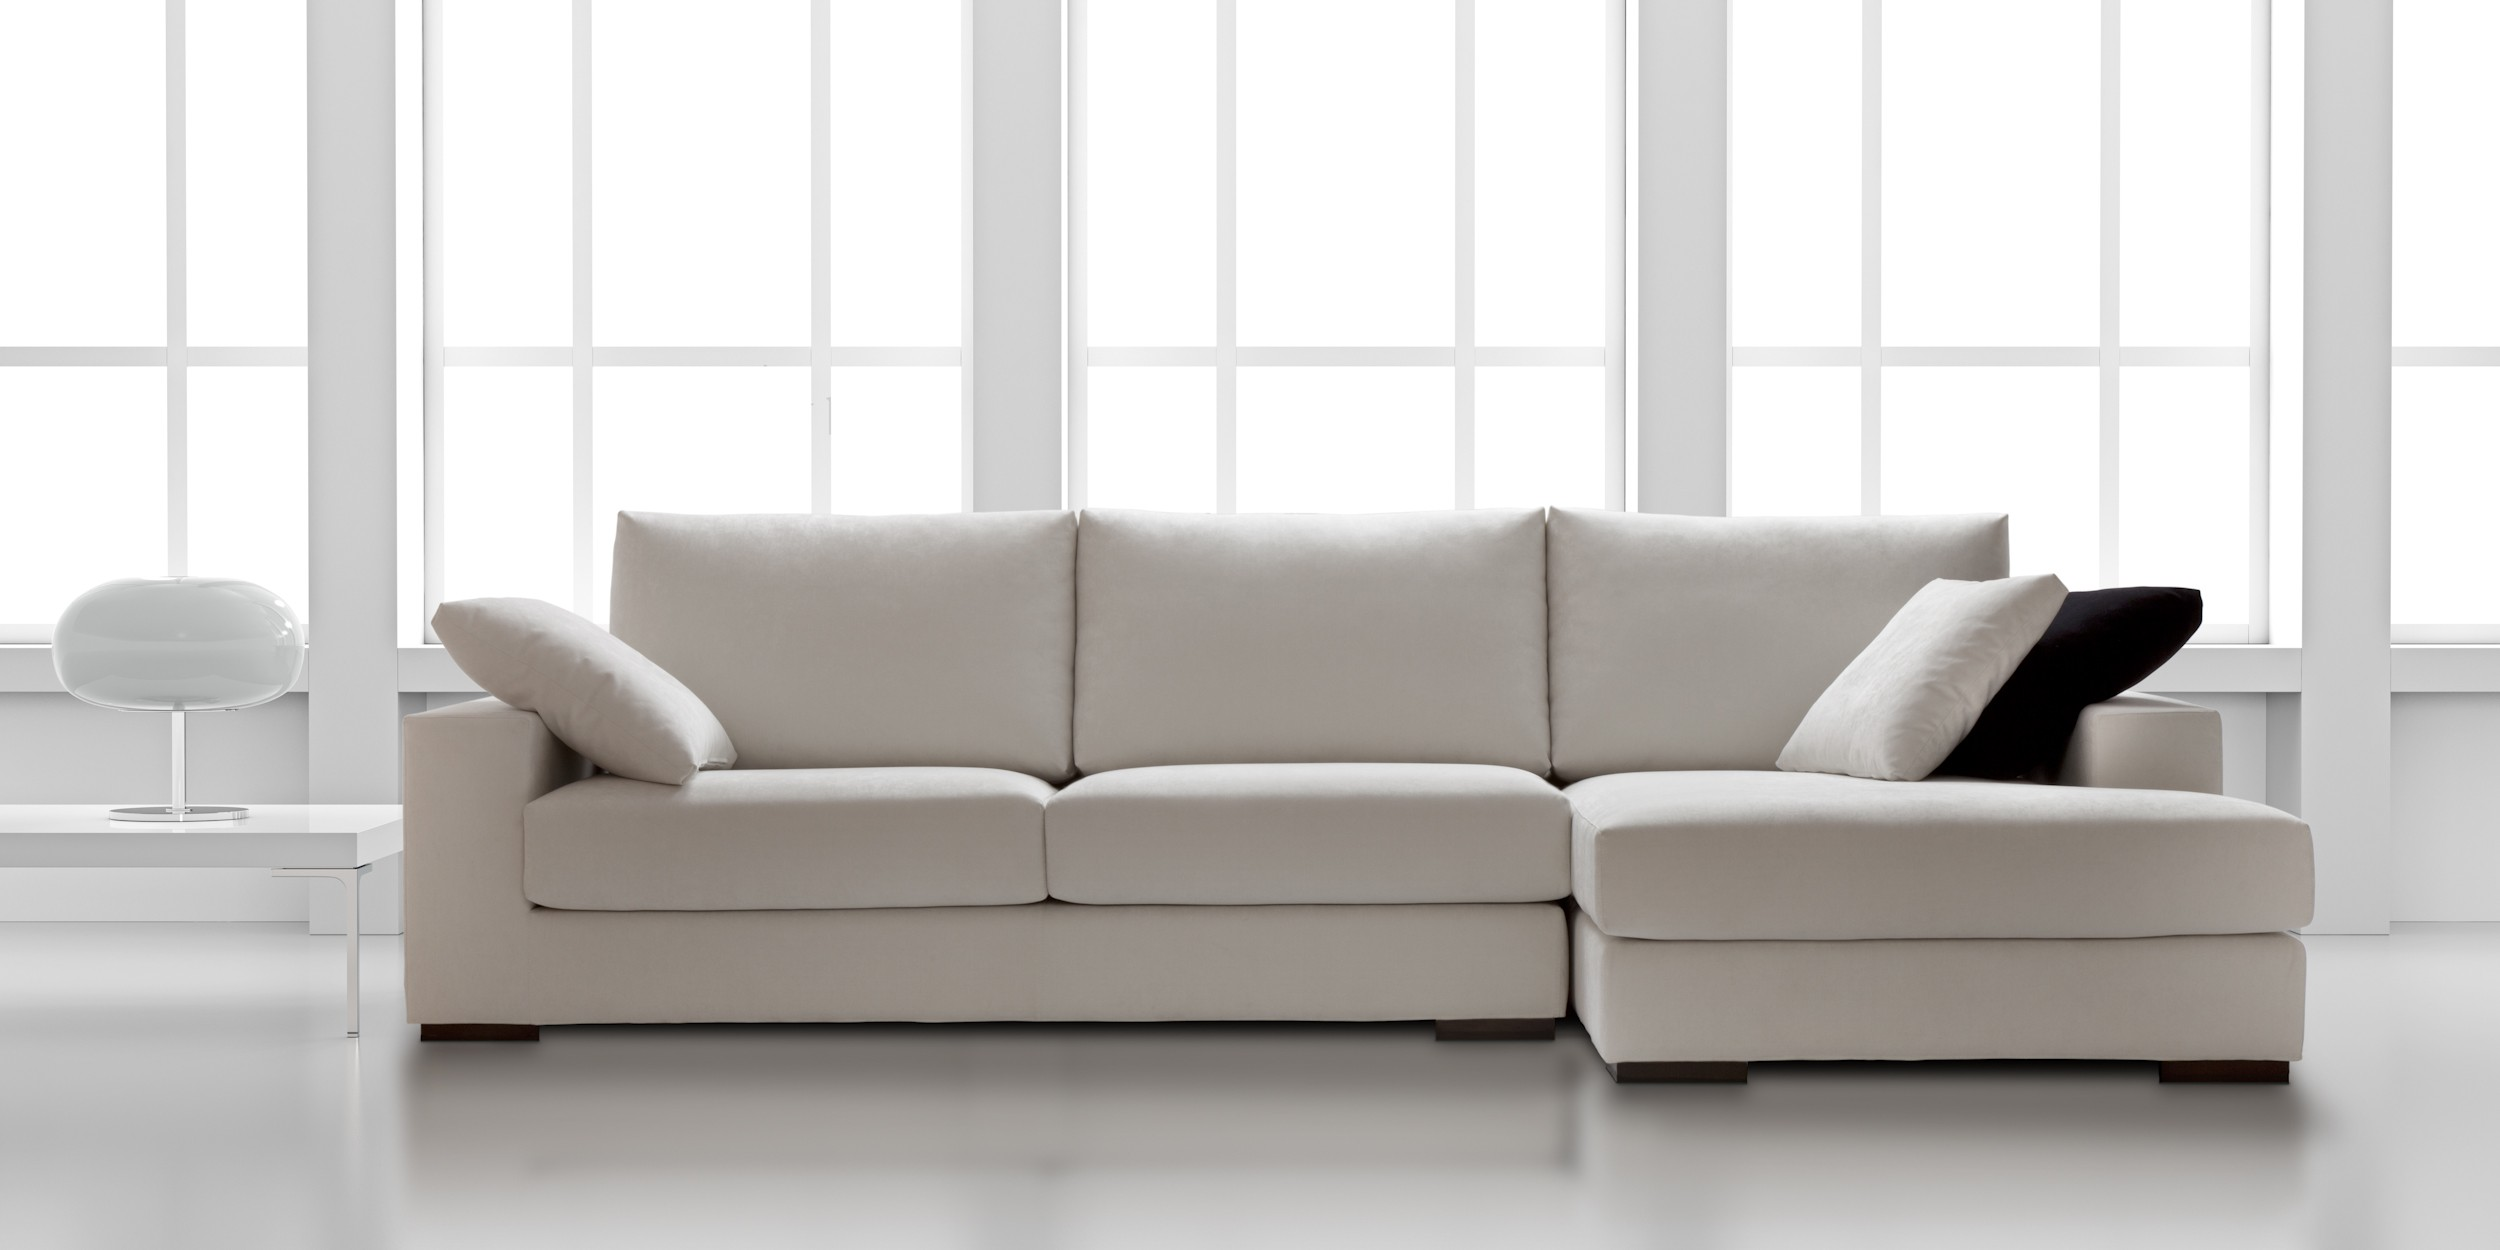 Fabrica de sofas barcelona great related to sillones y for Outlet sofas barcelona